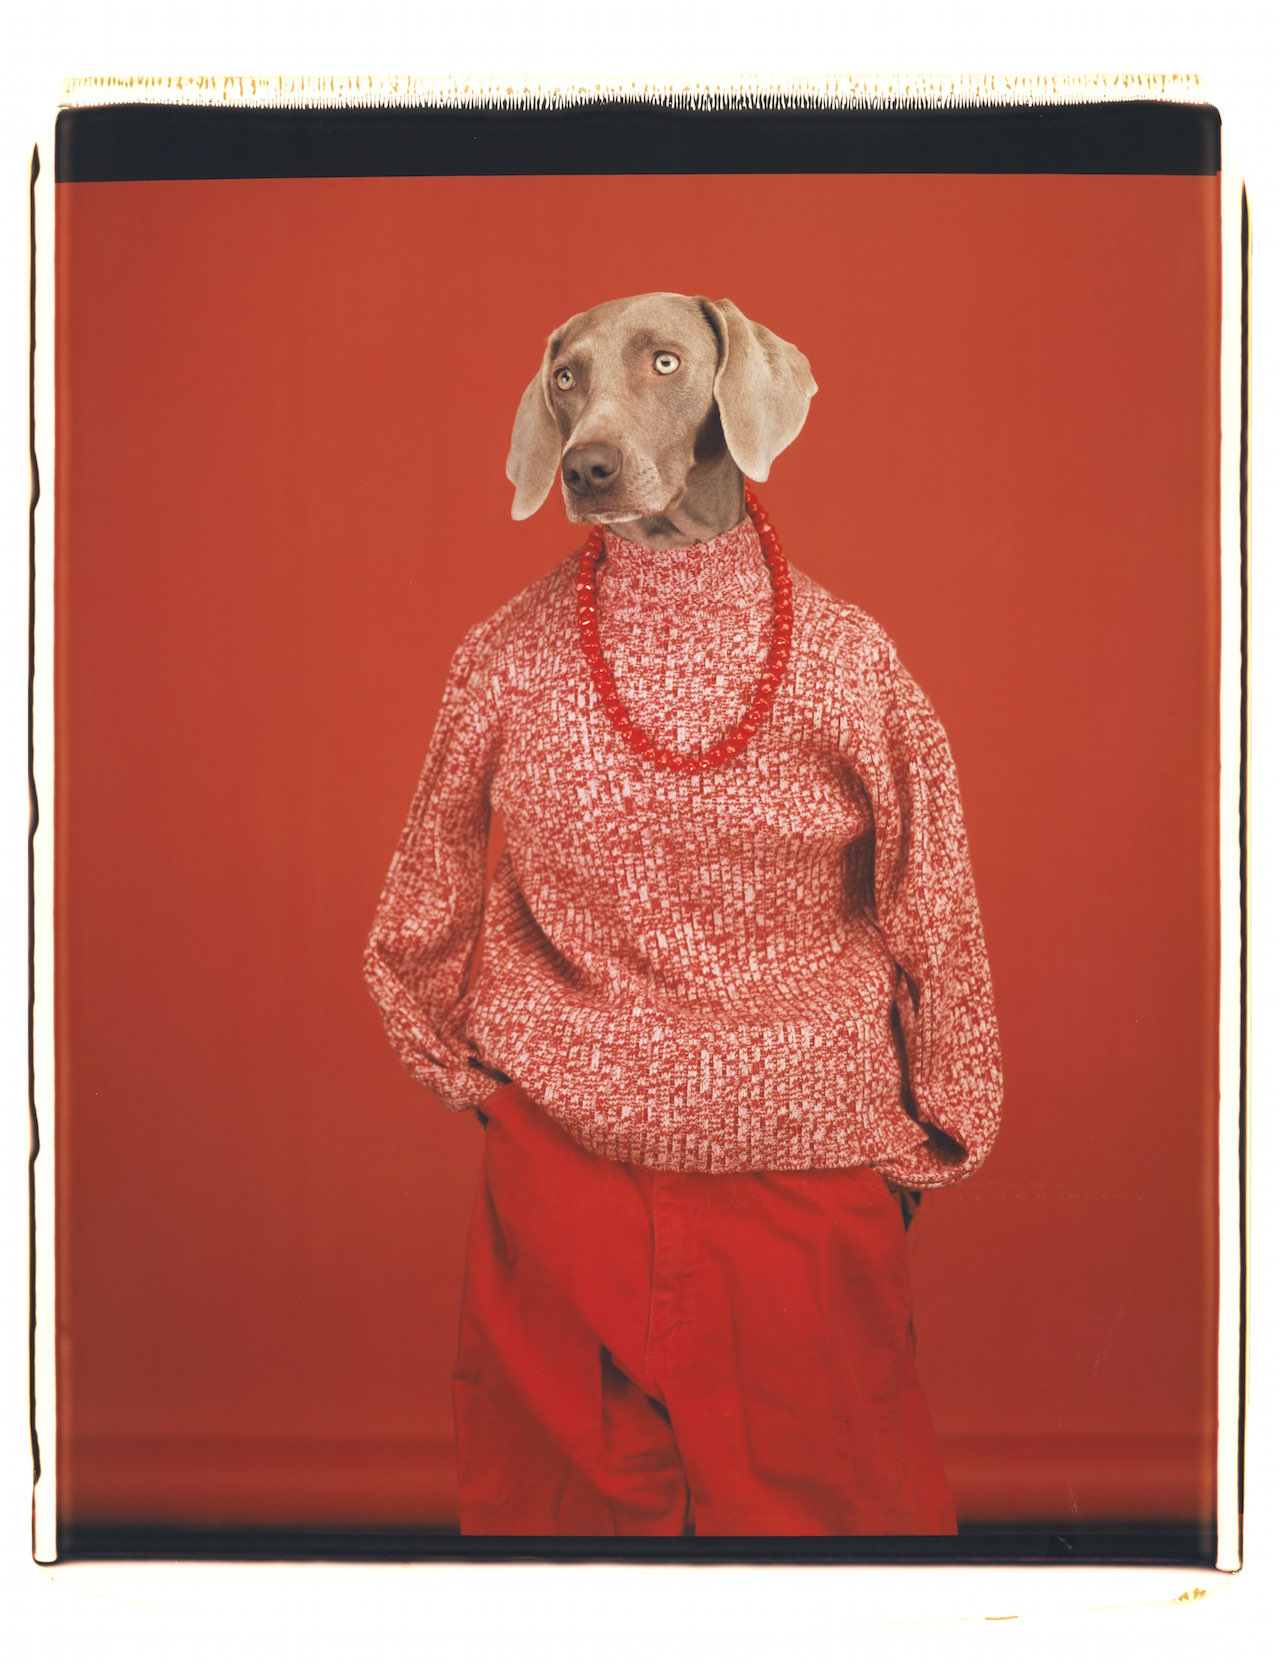 William Wegman, Casual, 2002. Courtesy of the artist. From the exhibition Being Human